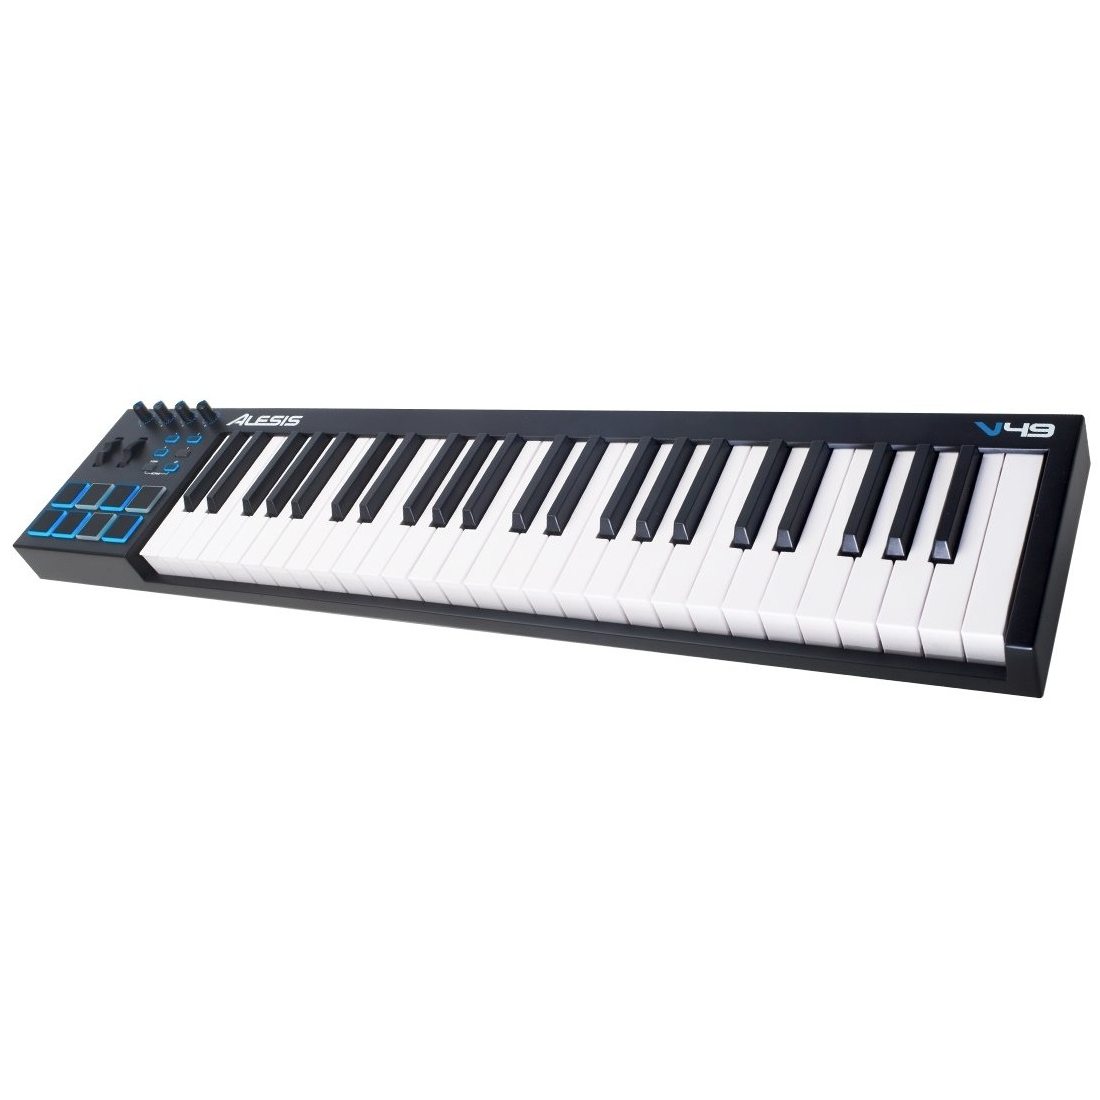 Alesis V49 | 49-Key USB MIDI Keyboard & Drum Pad Controller by inMusic Brands, Inc